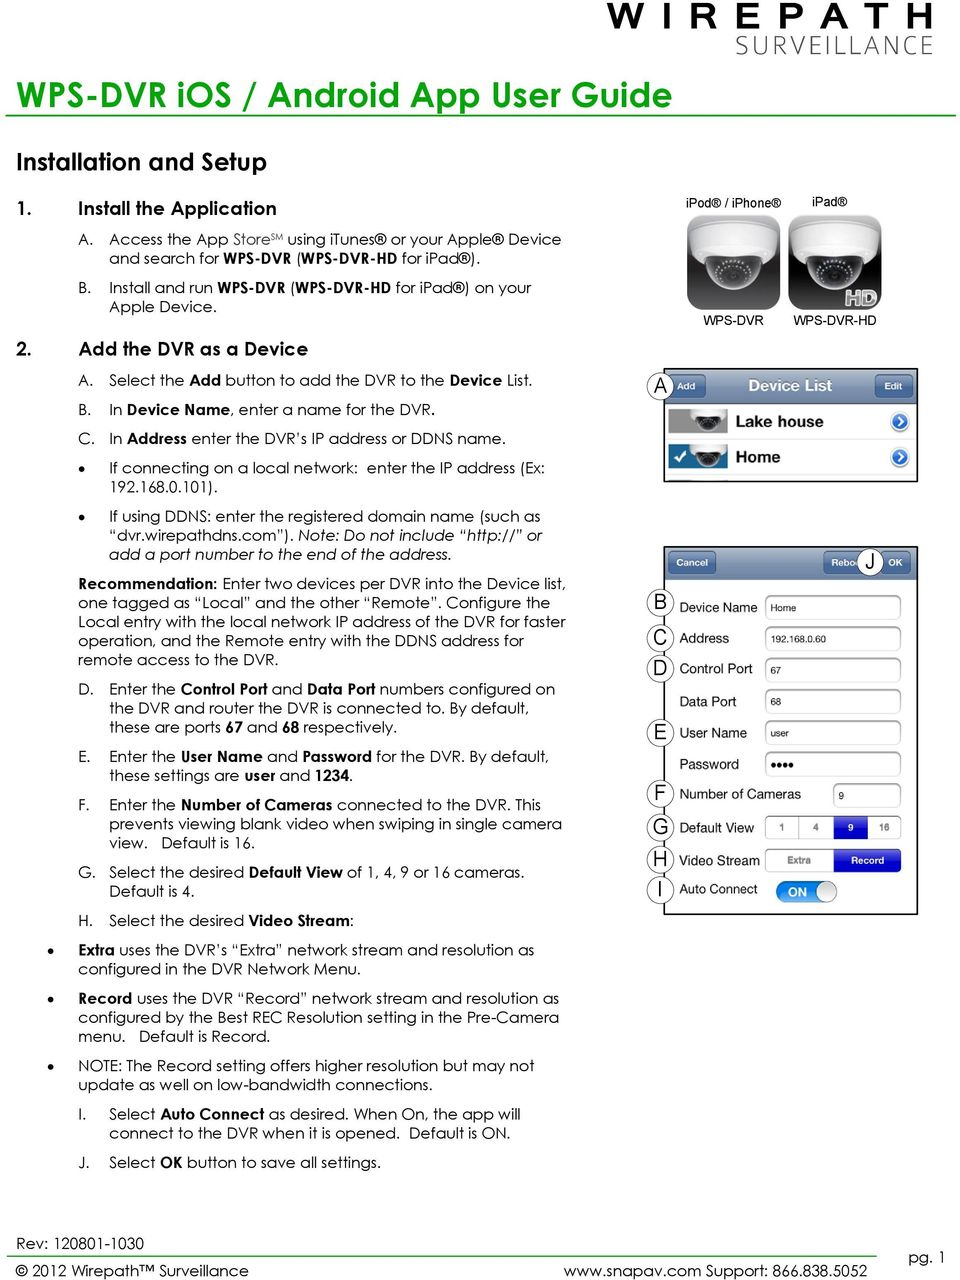 WPS-DVR ios / Android App User Guide - PDF